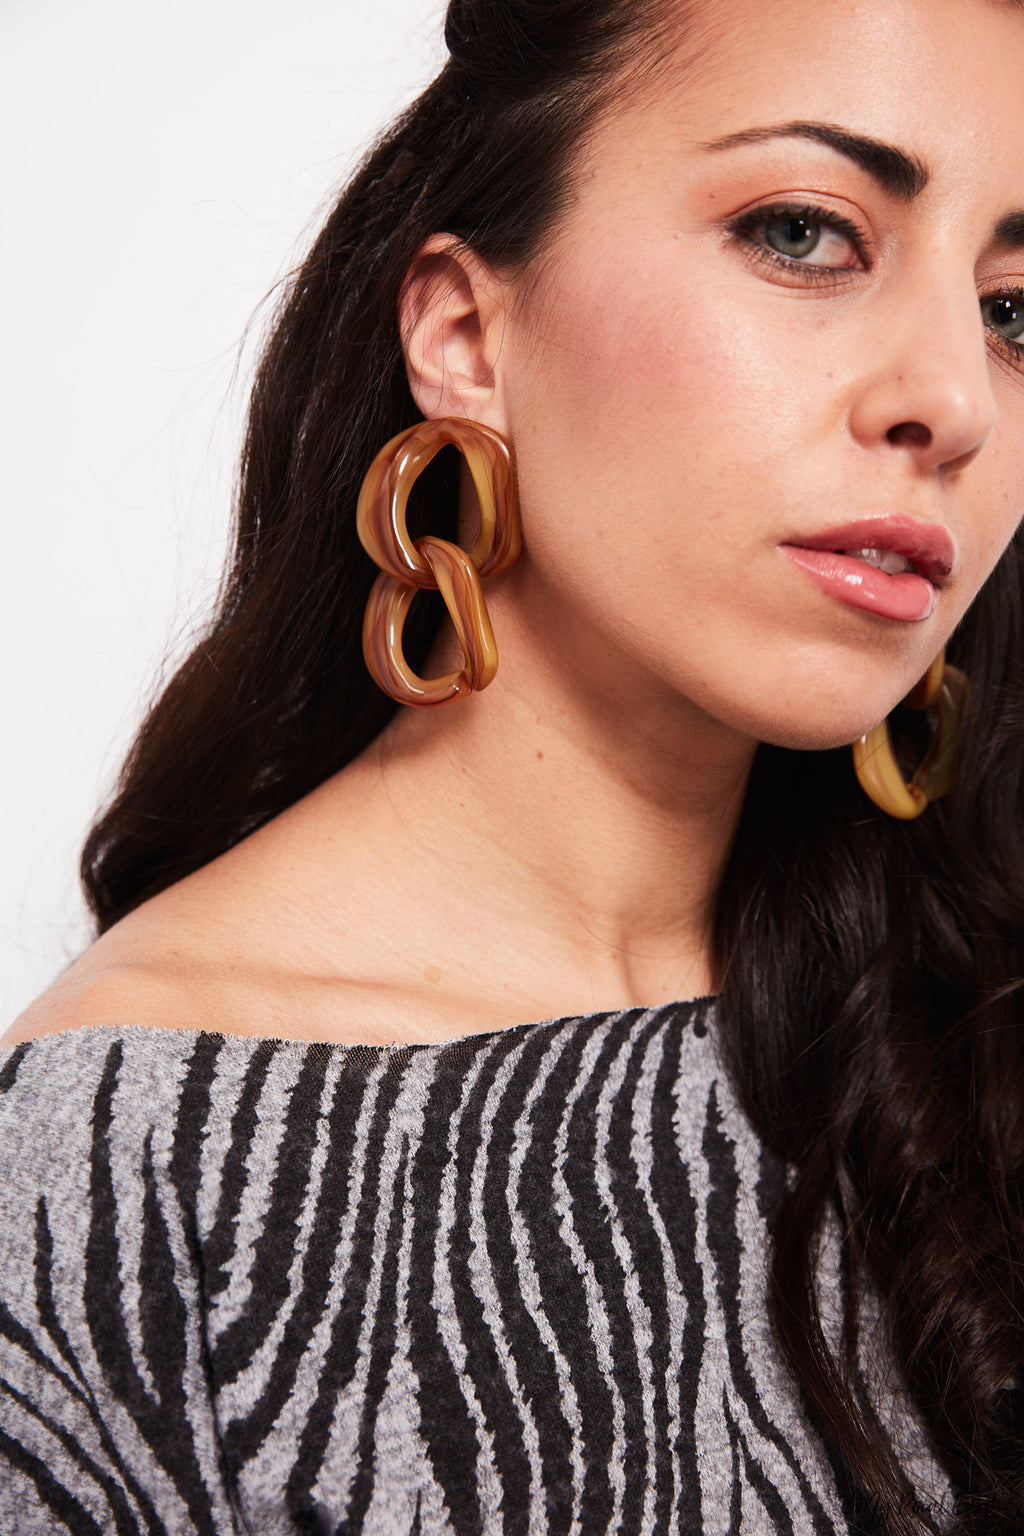 Calatheas- acrylic chain earrings - My Roial Ears LTD